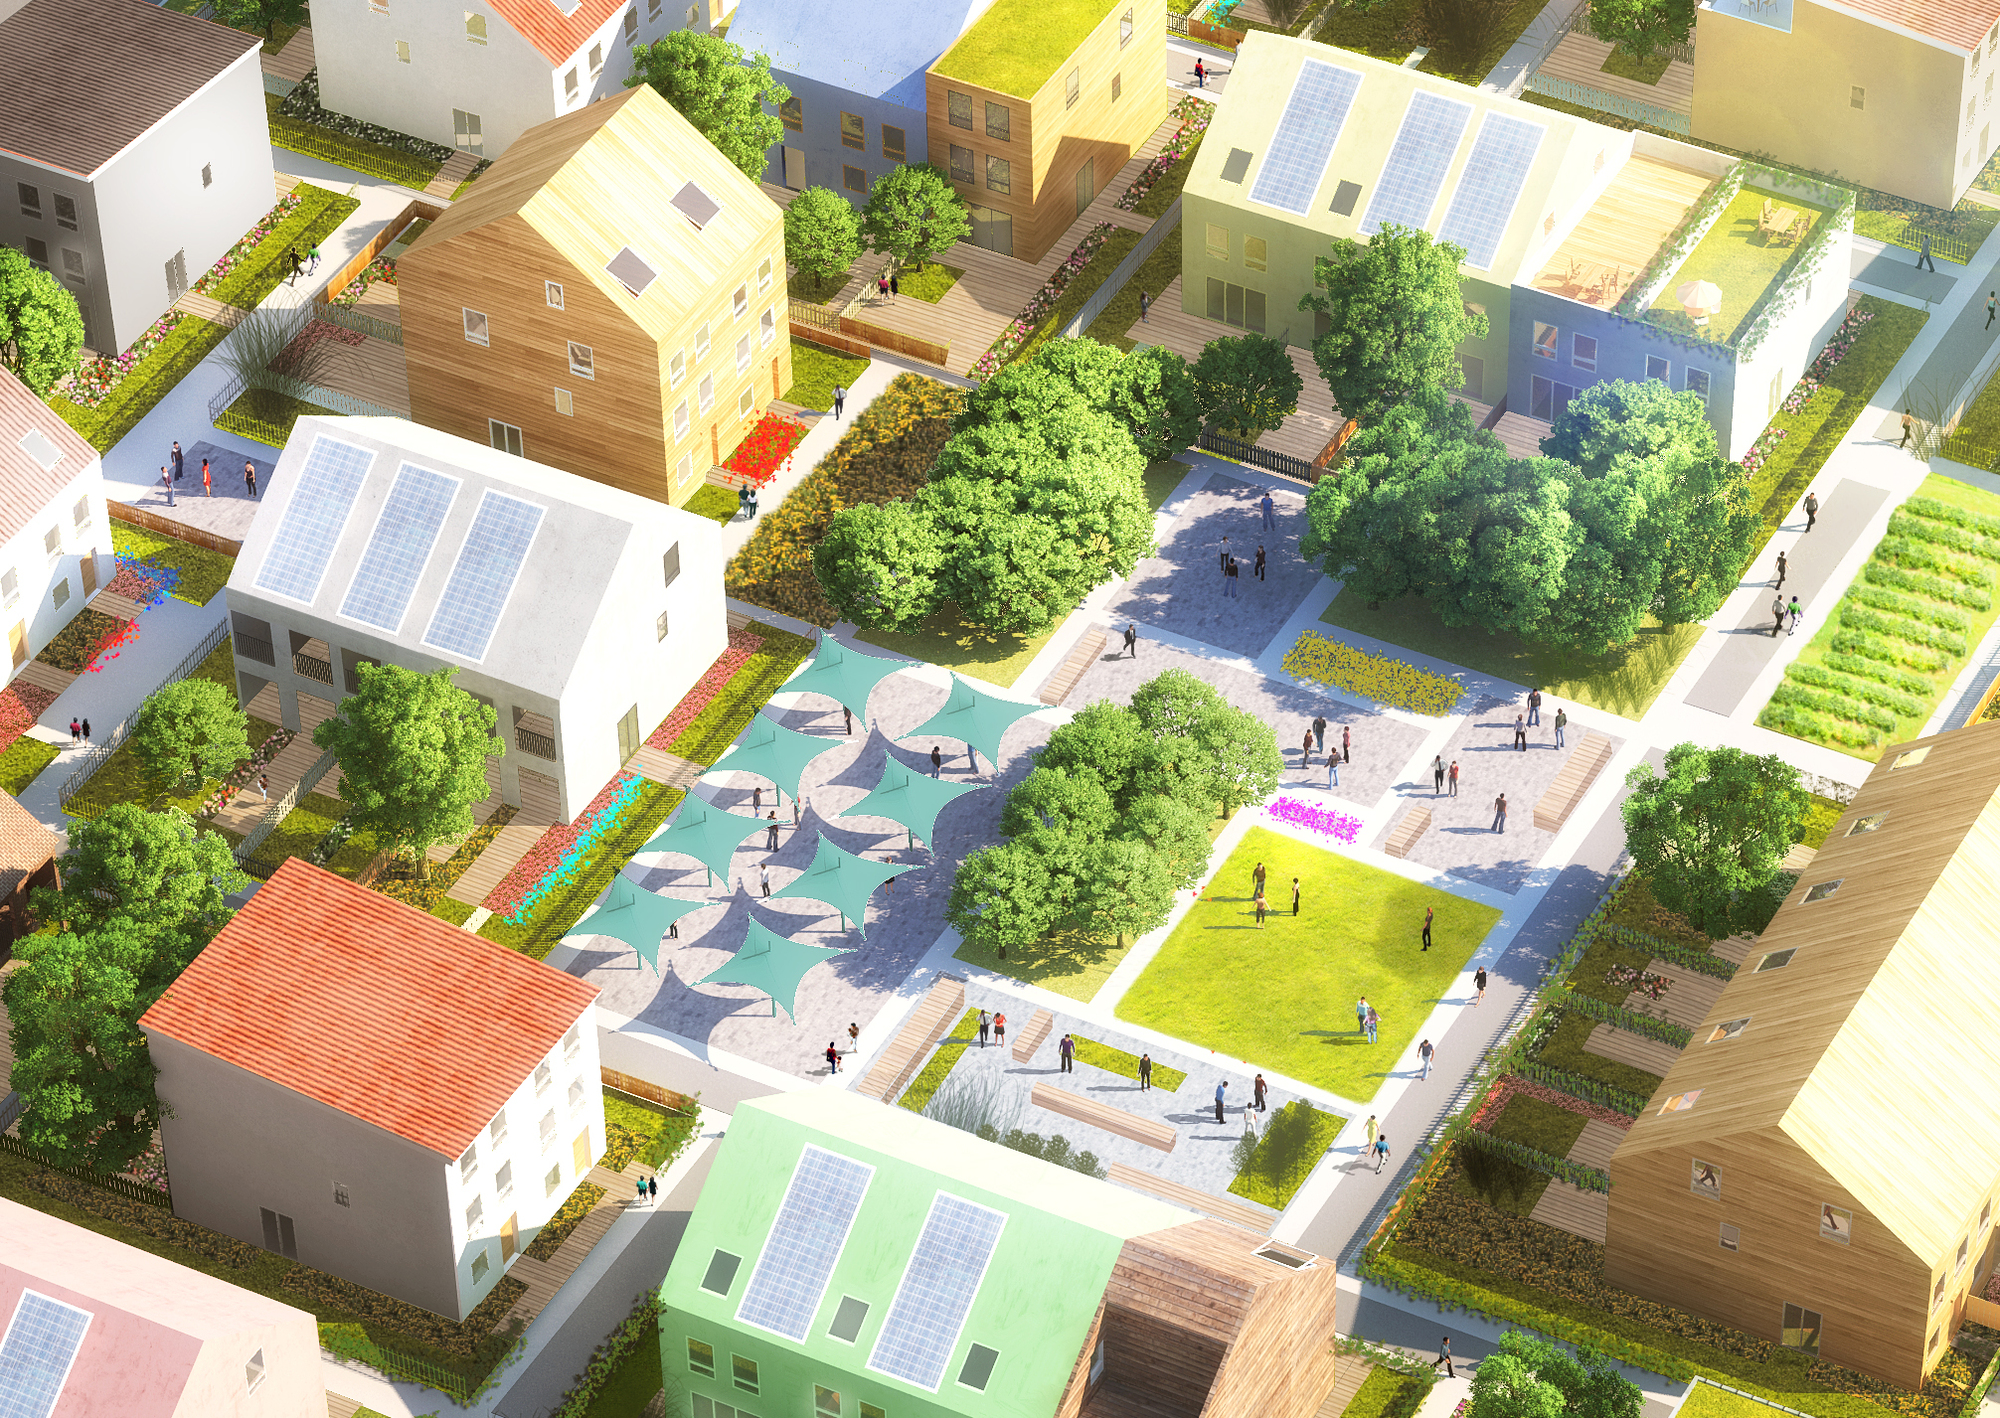 Mvrdv partners with traumhaus to reinvent affordable living in the suburbs architecture news - Housessquare meters three affordable projects ...